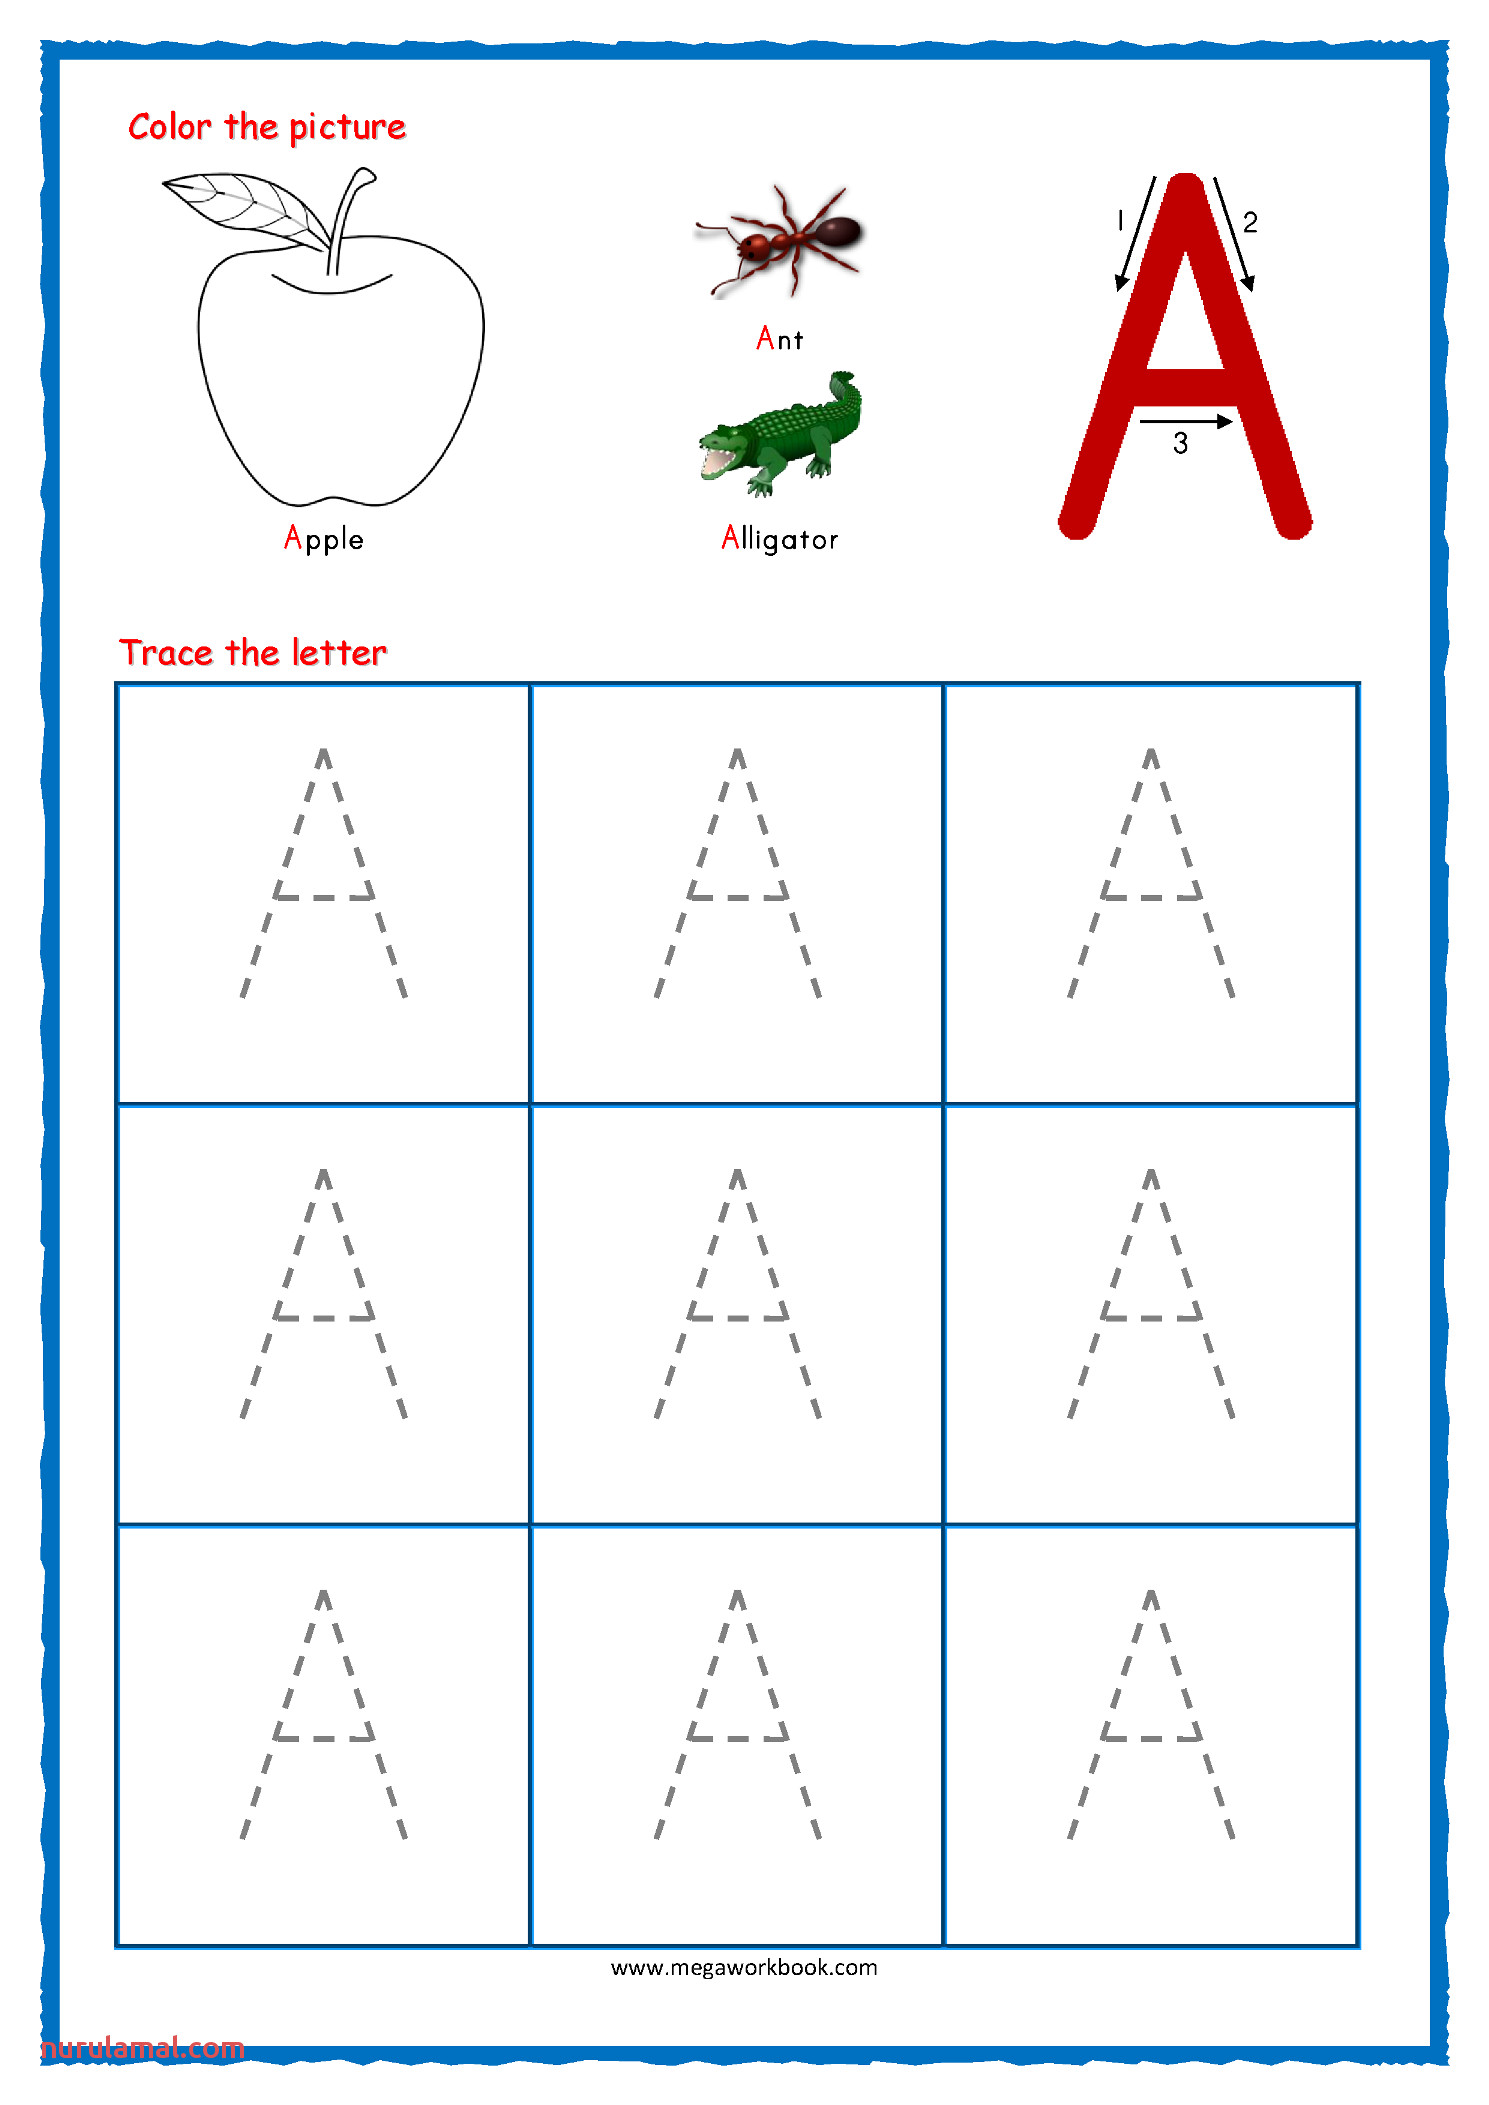 worksheet ideas tracing for toddlers capital letter tracing with crayons 01 alphabet a letterslphabet capital worksheets image